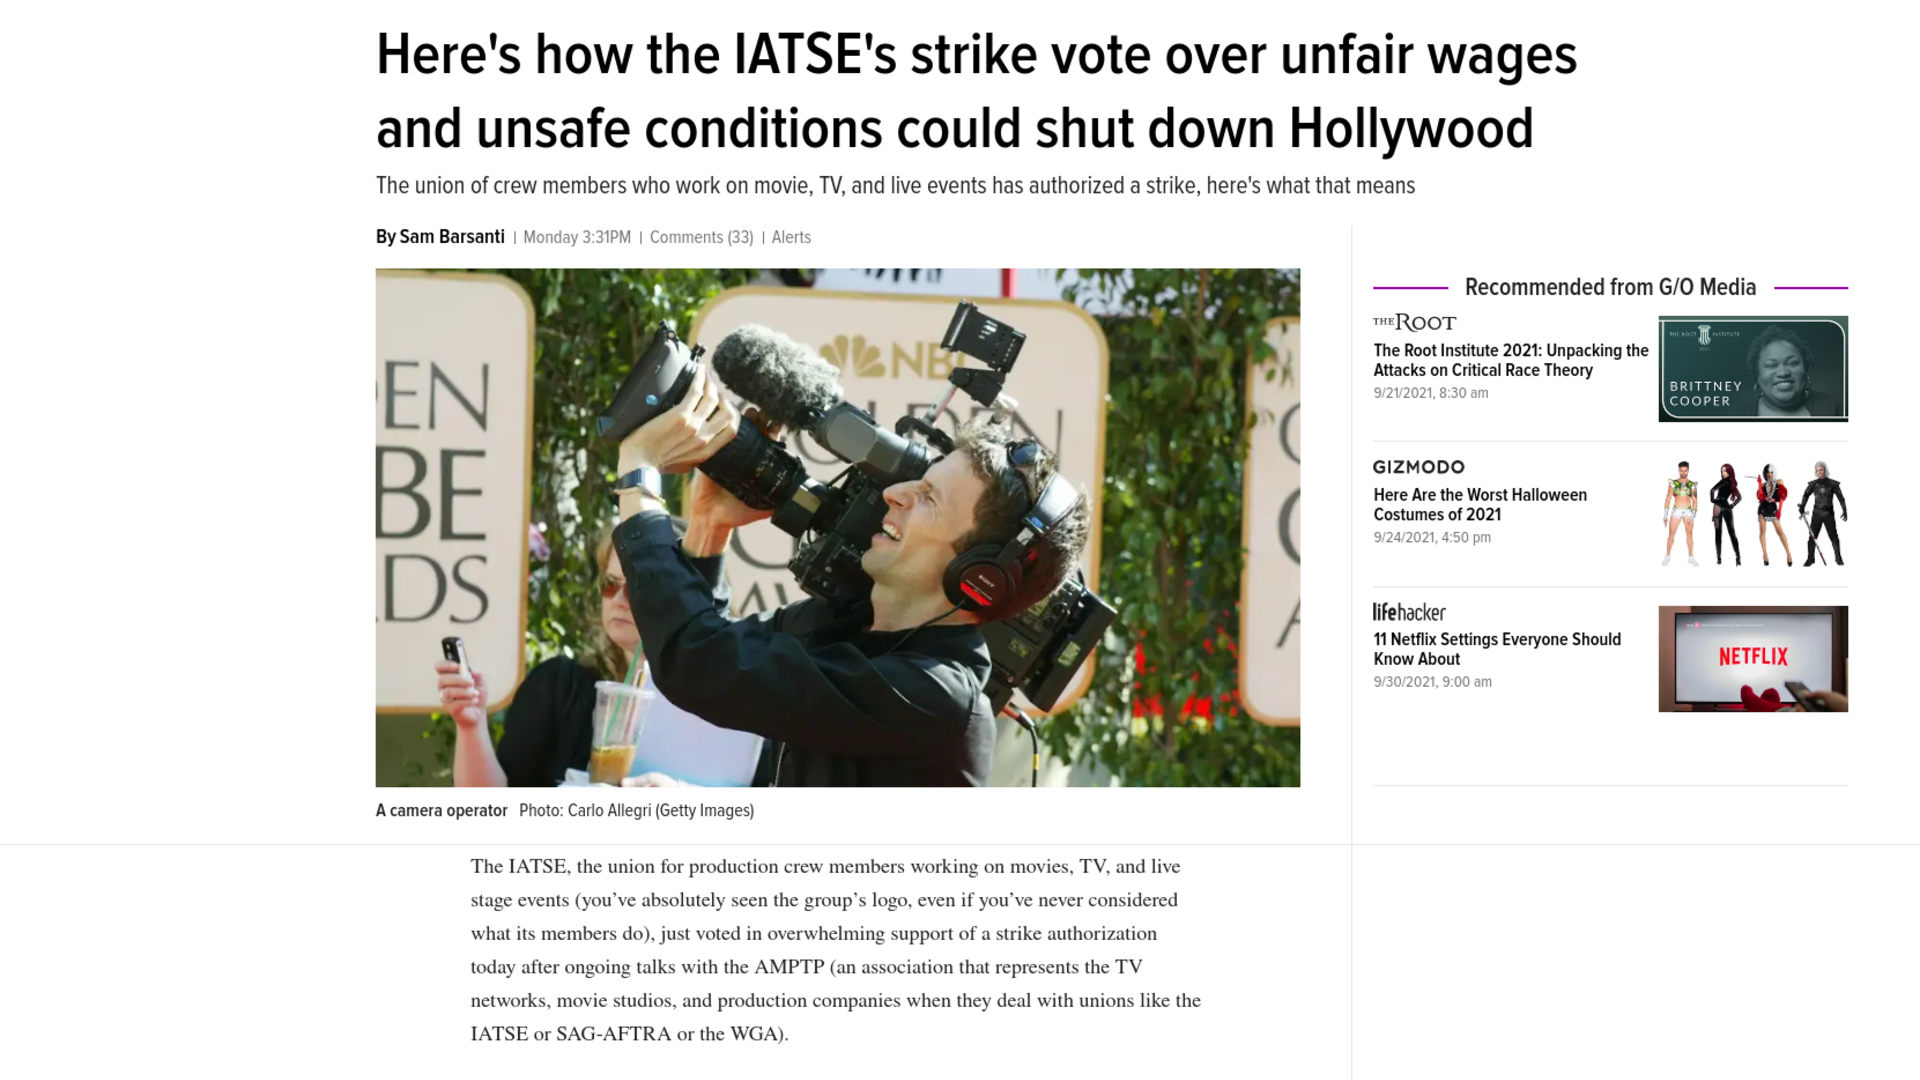 Fairness Rocks News Here's how the IATSE's strike vote over unfair wages and unsafe conditions could shut down Hollywood